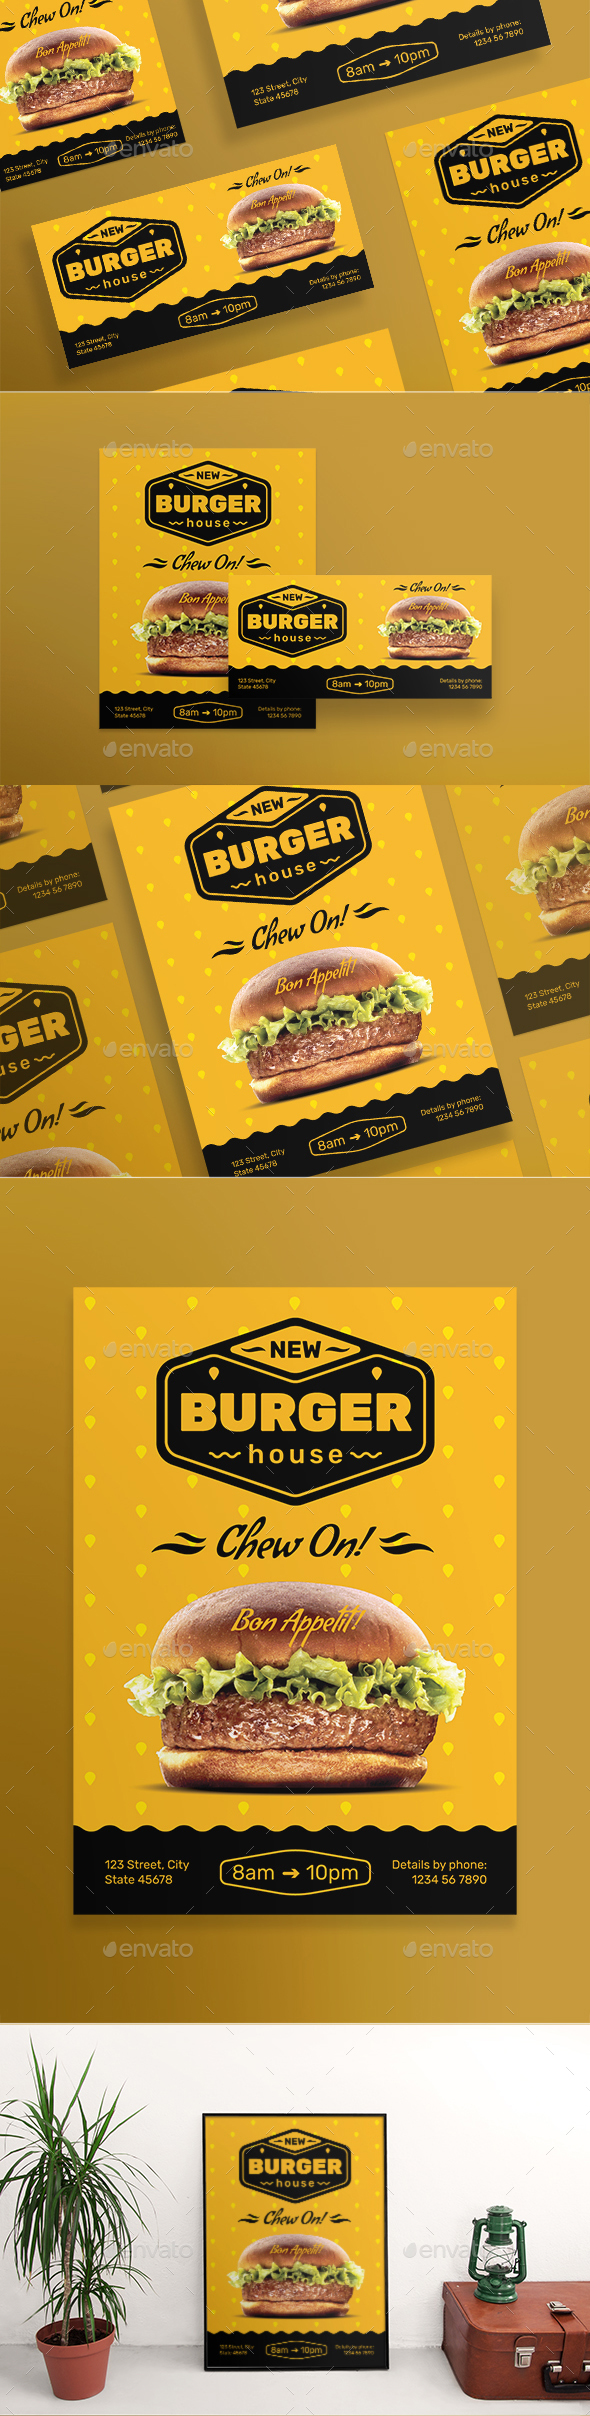 Burger House Banner Pack - Banners & Ads Web Elements